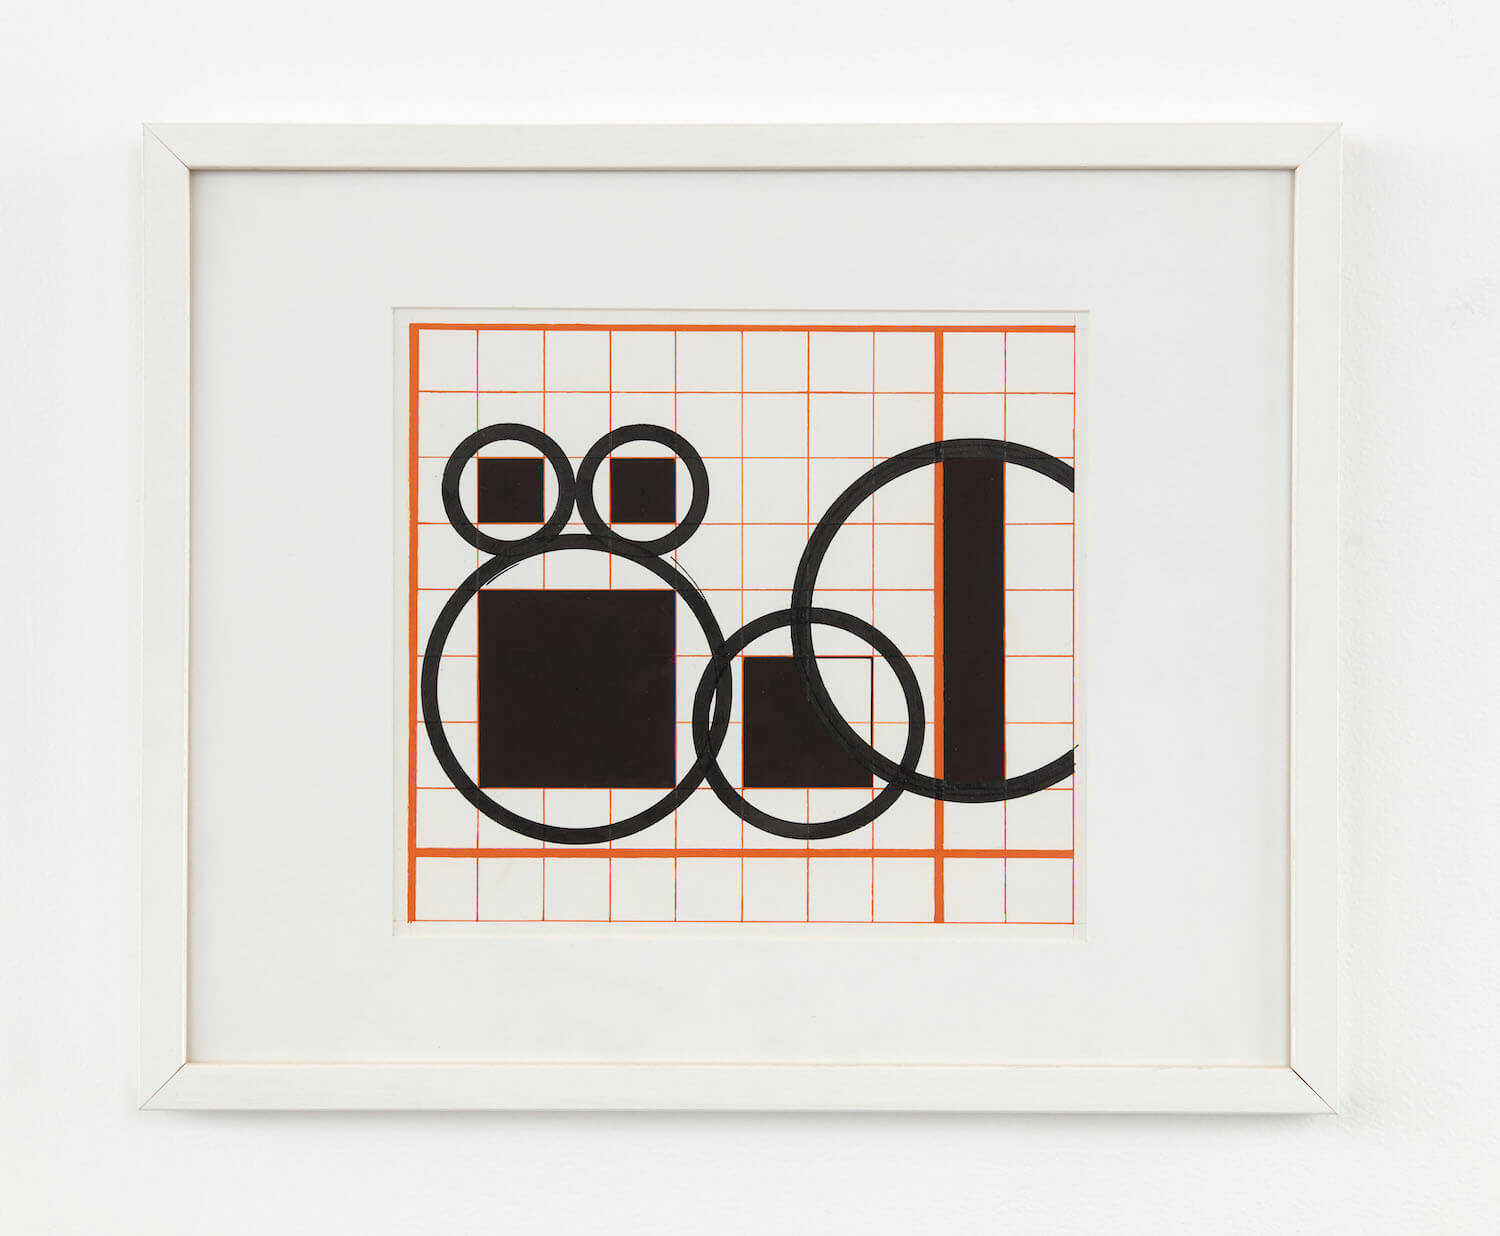 Horwitz, Study for Language Series I (CH 07.002)(#1435) A